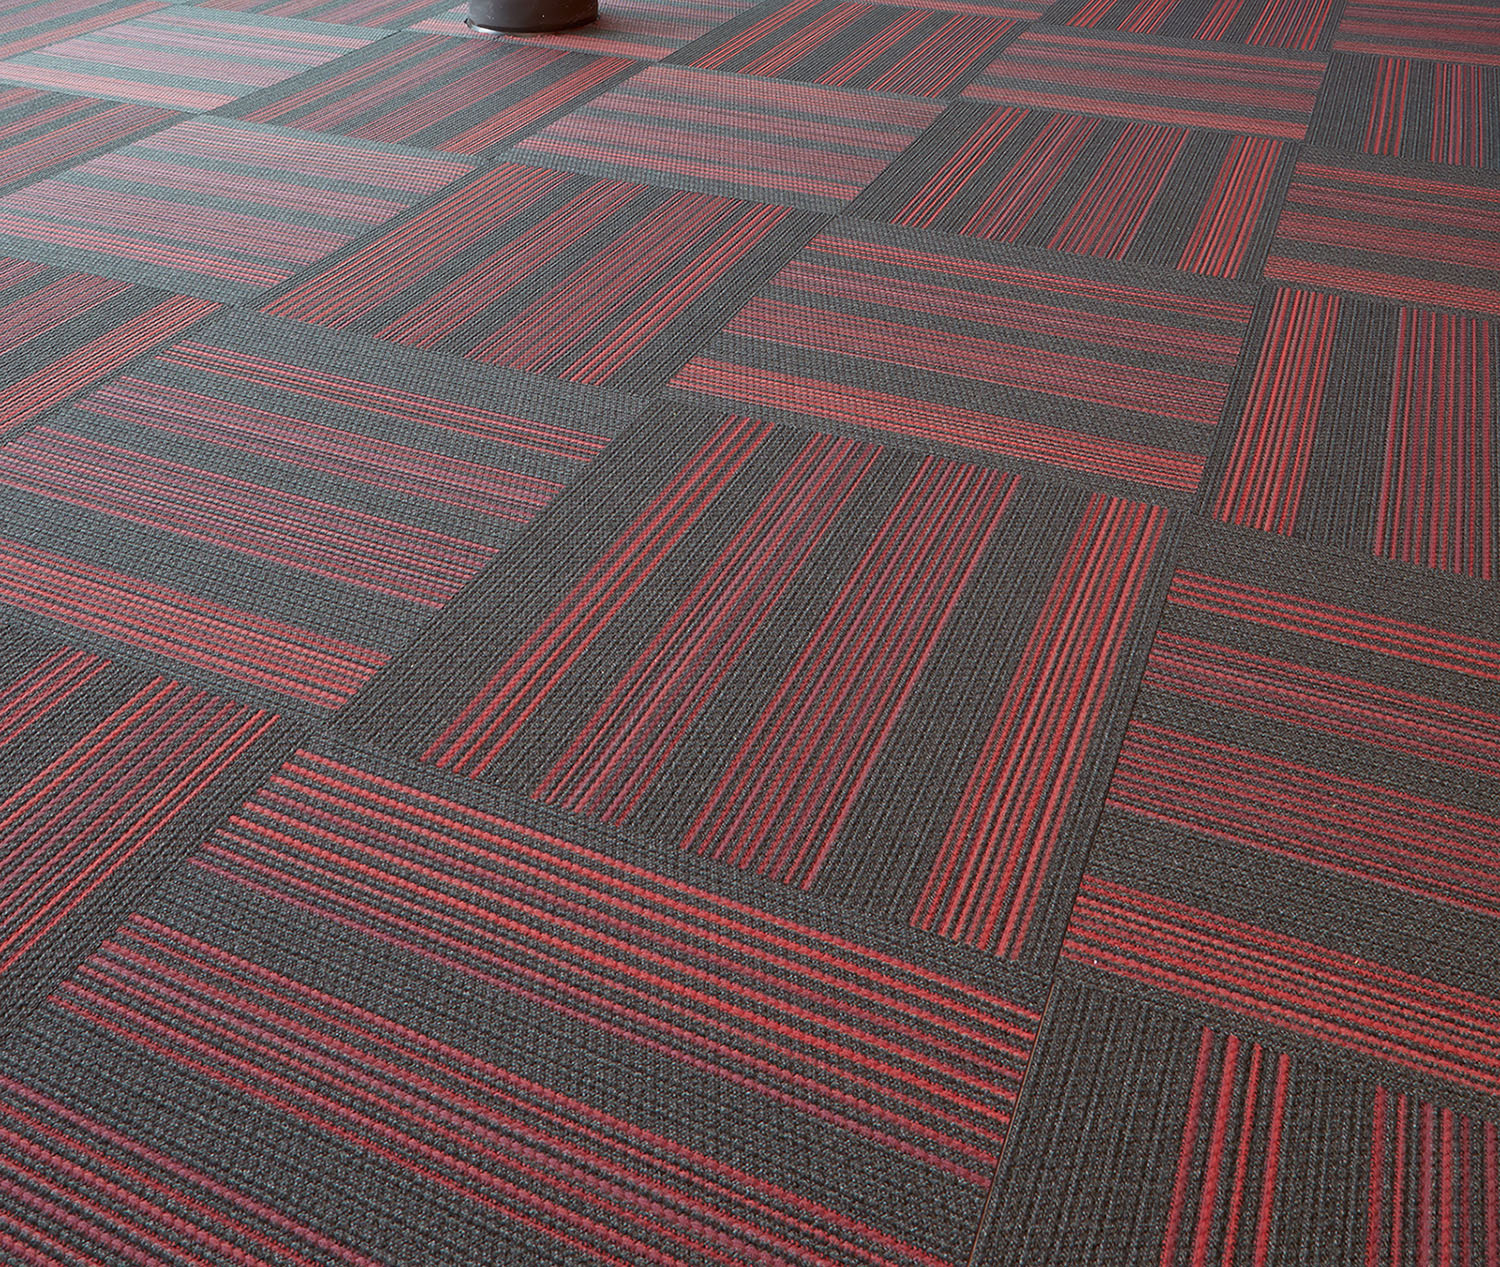 News kinetex wins product innovation award at neocon j for Award flooring